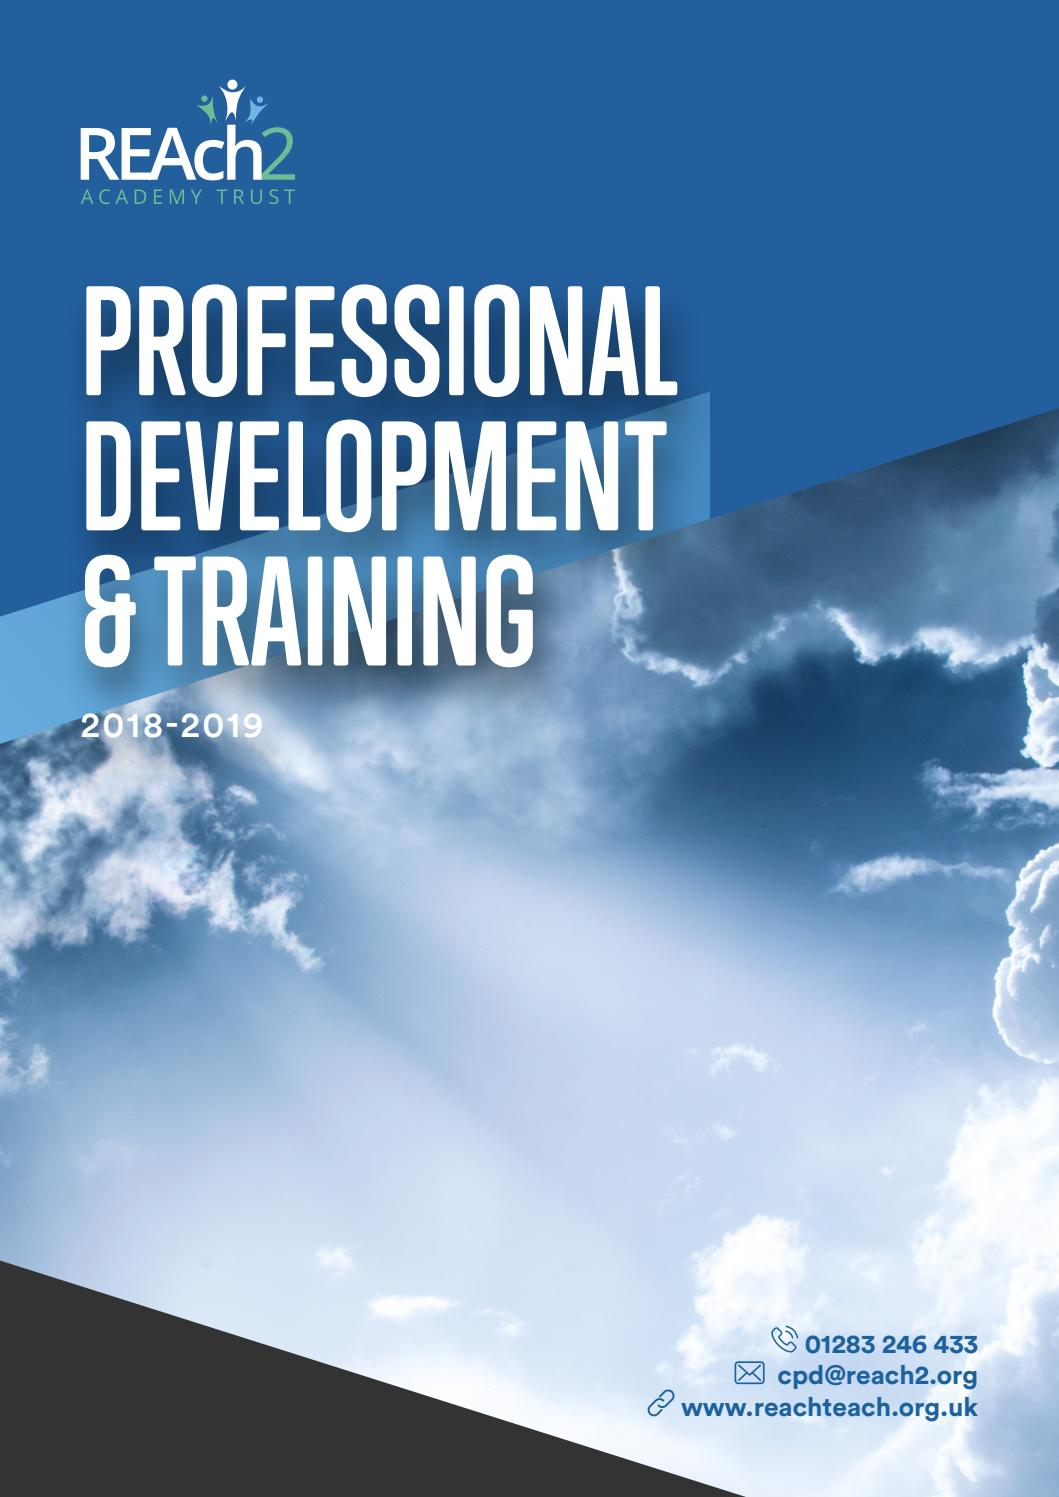 Reach2 Academy Trust >> Reach2 Professional Development And Training 2018 2019 By